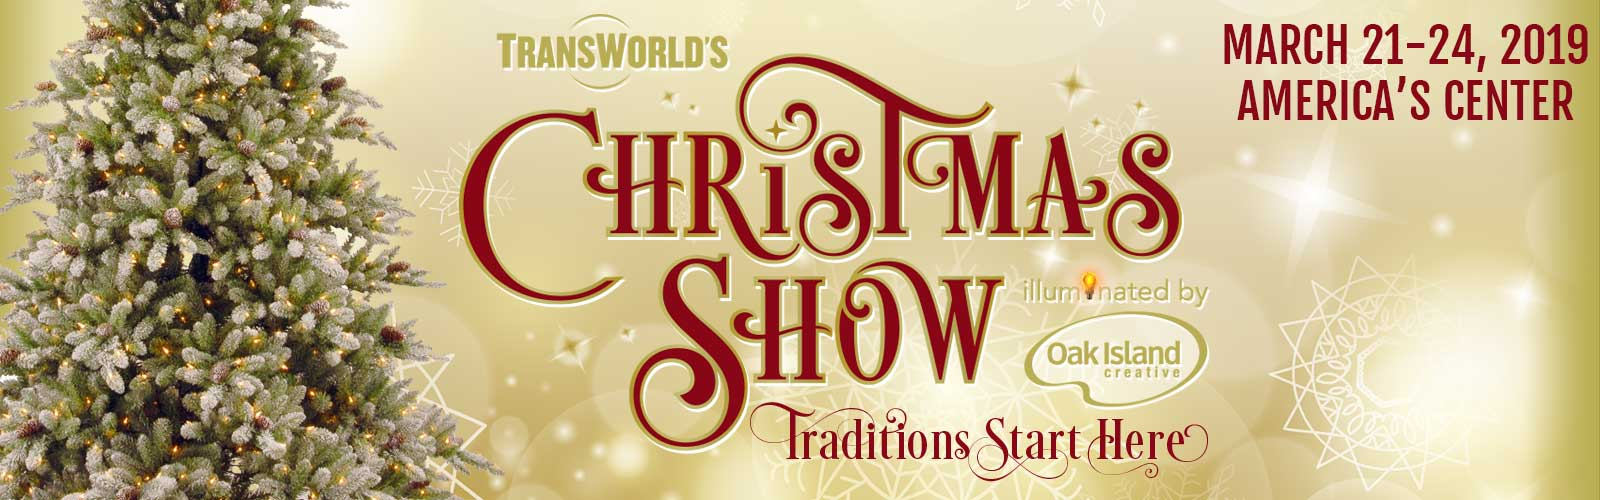 TransWorld's Christmas Show